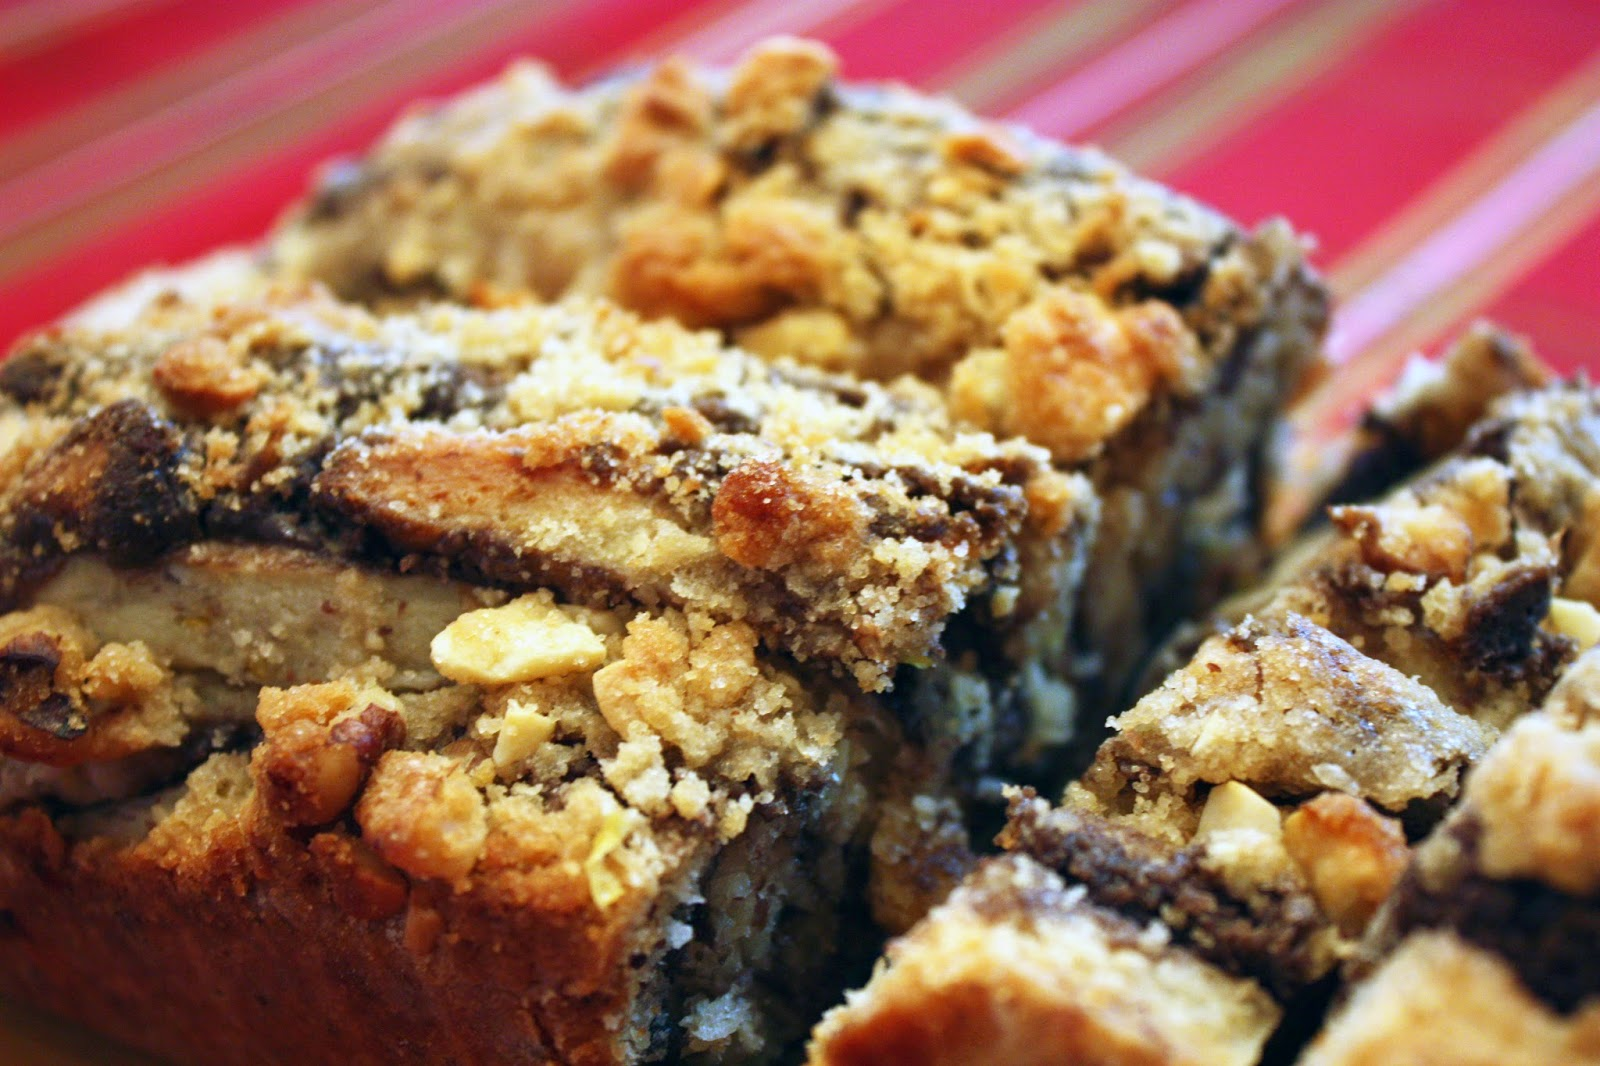 vegan chocolate hazelnut babka with streusel topping